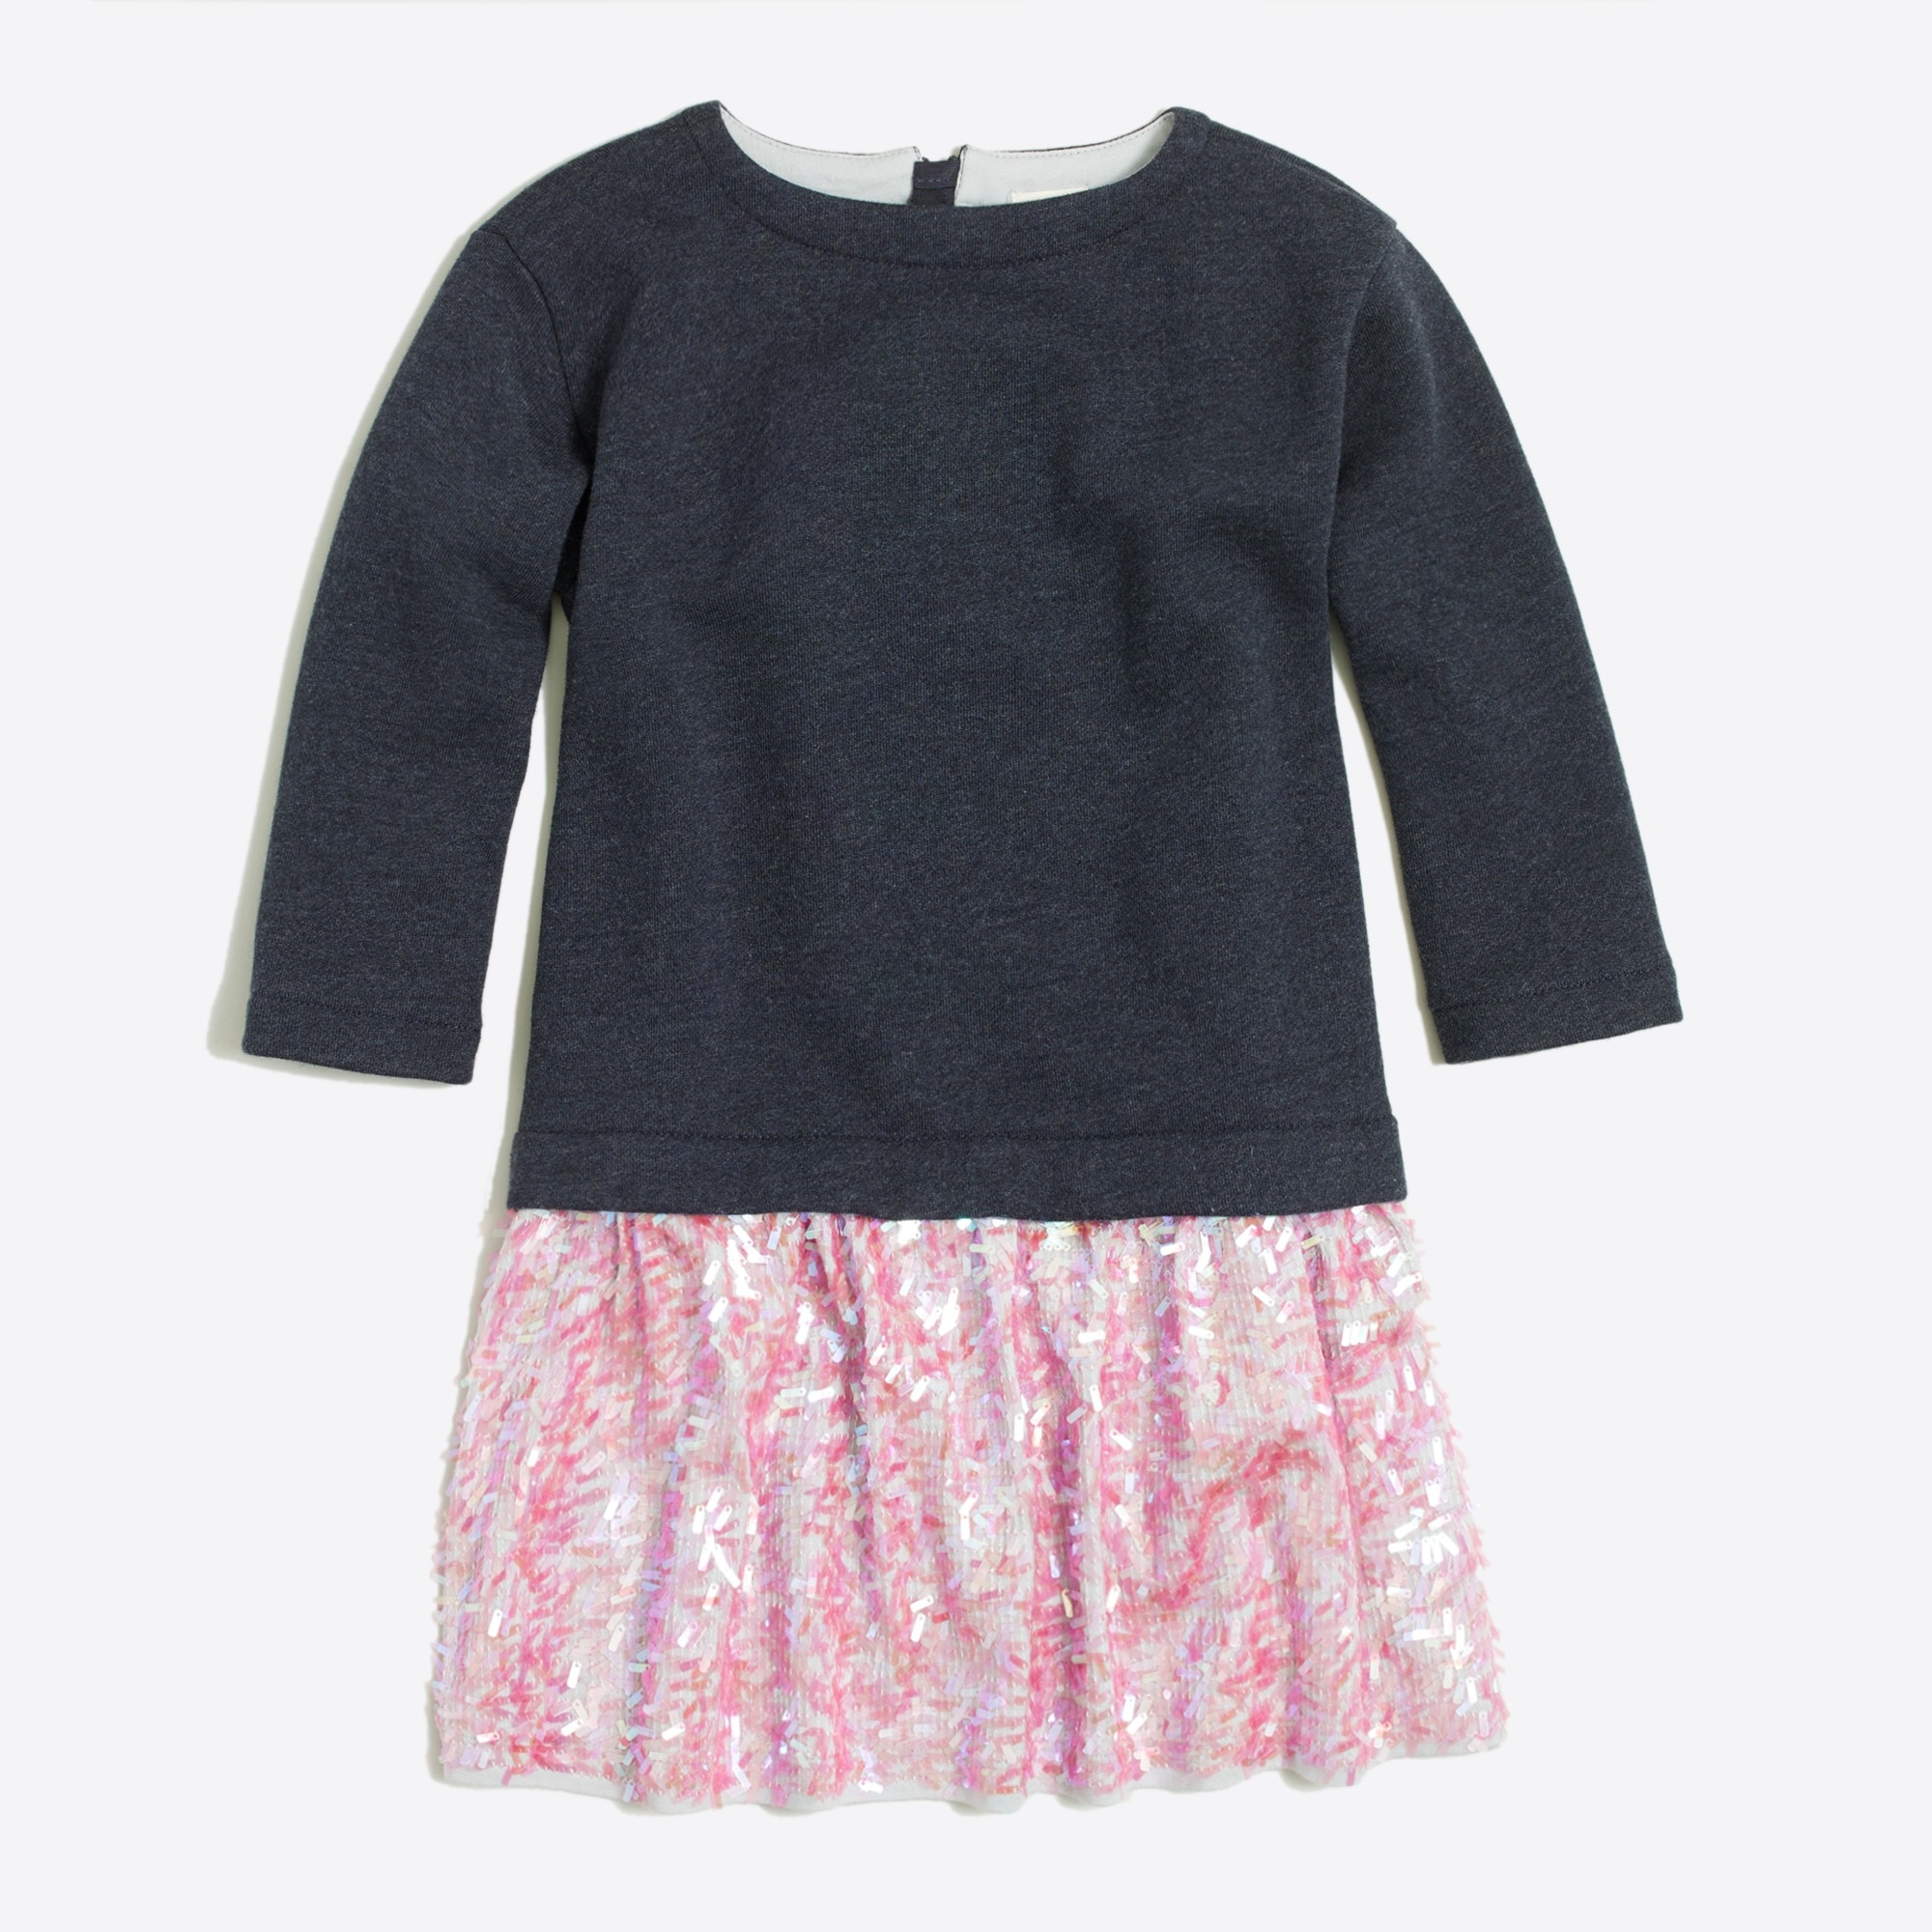 girls' sequin-skirt sweatshirt dress : factorygirls dresses & skirts